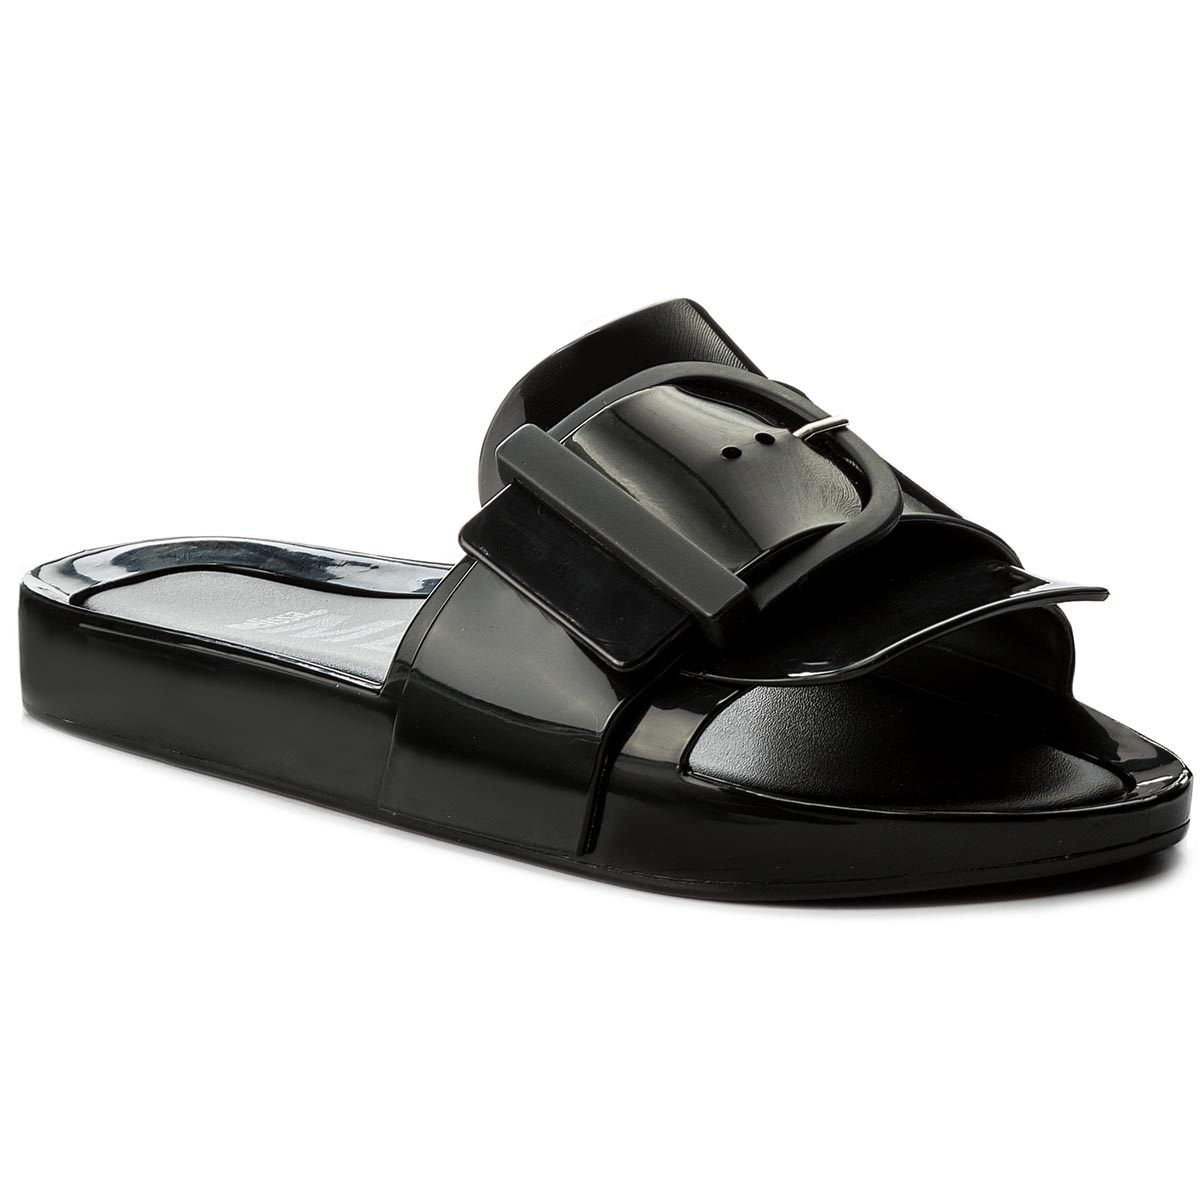 Klapki MELISSA - Beach Slide IV Ad 32286 Black 01003